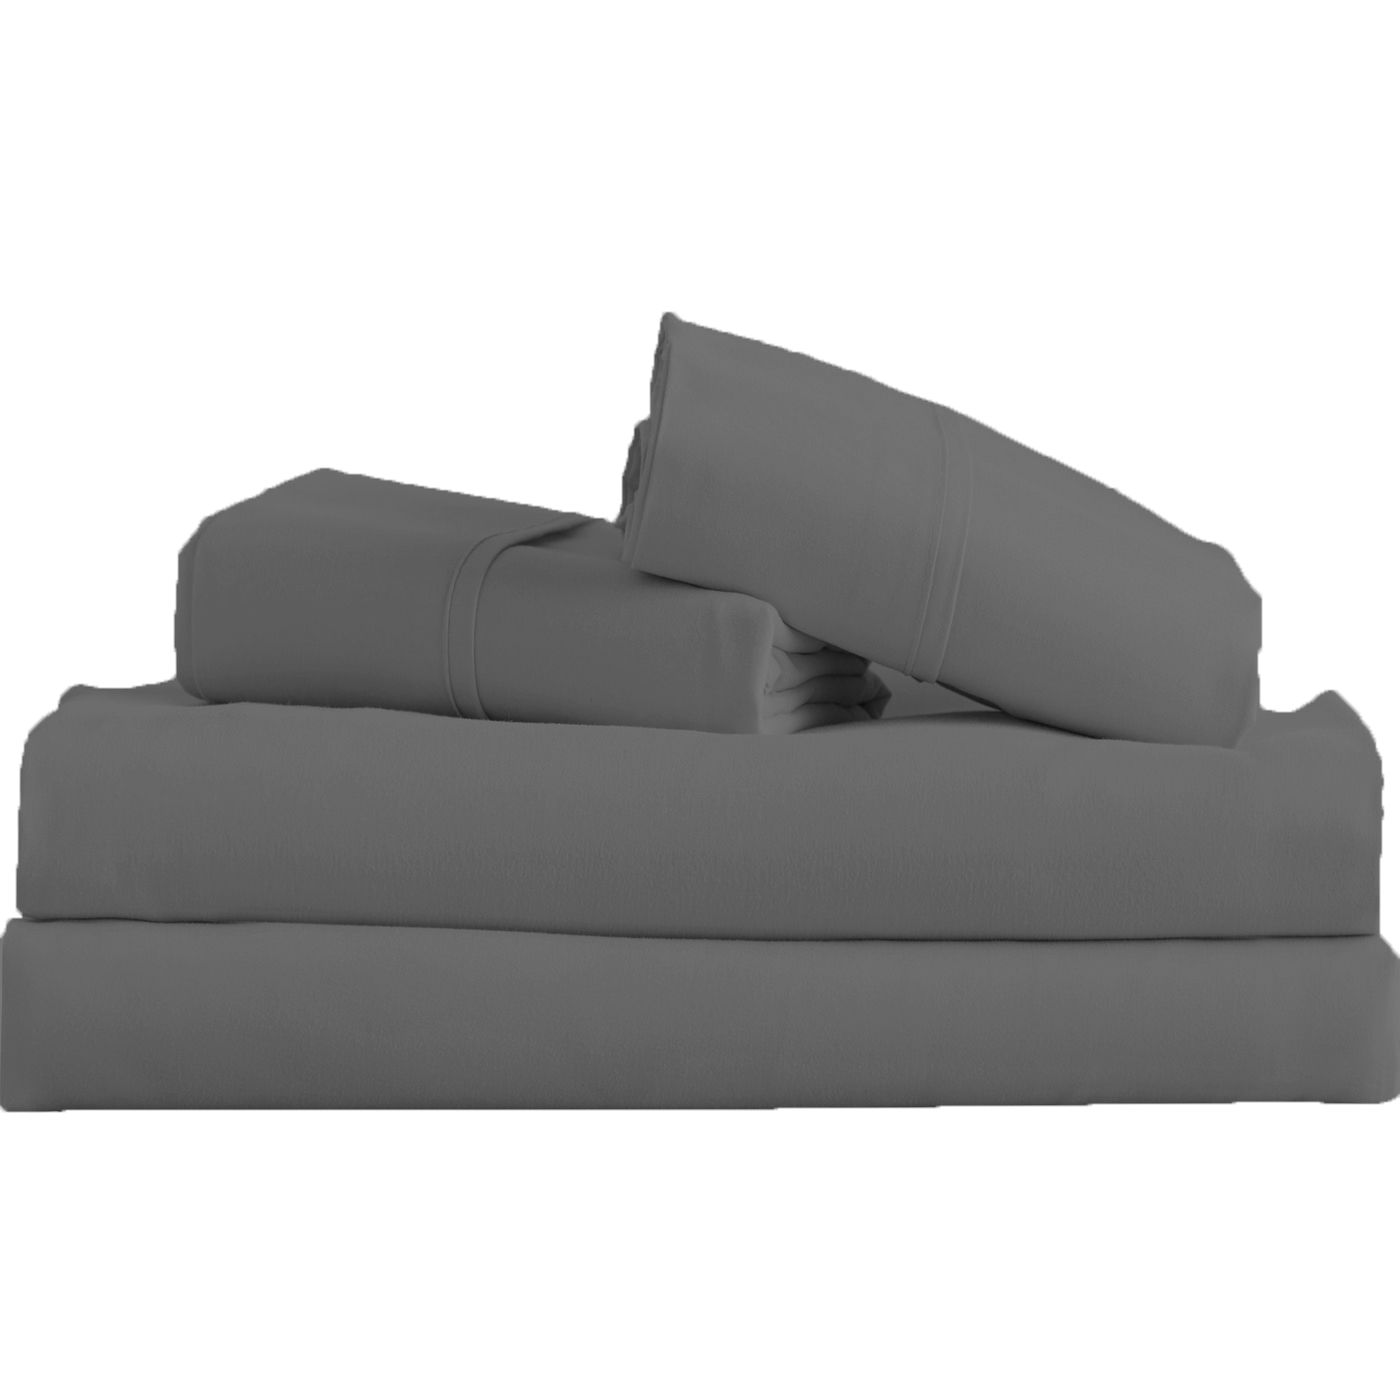 Supreme-Super-Soft-4-Piece-Bed-Sheet-Set-Deep-Pocket-Bedding-All-Colors-Sizes thumbnail 10